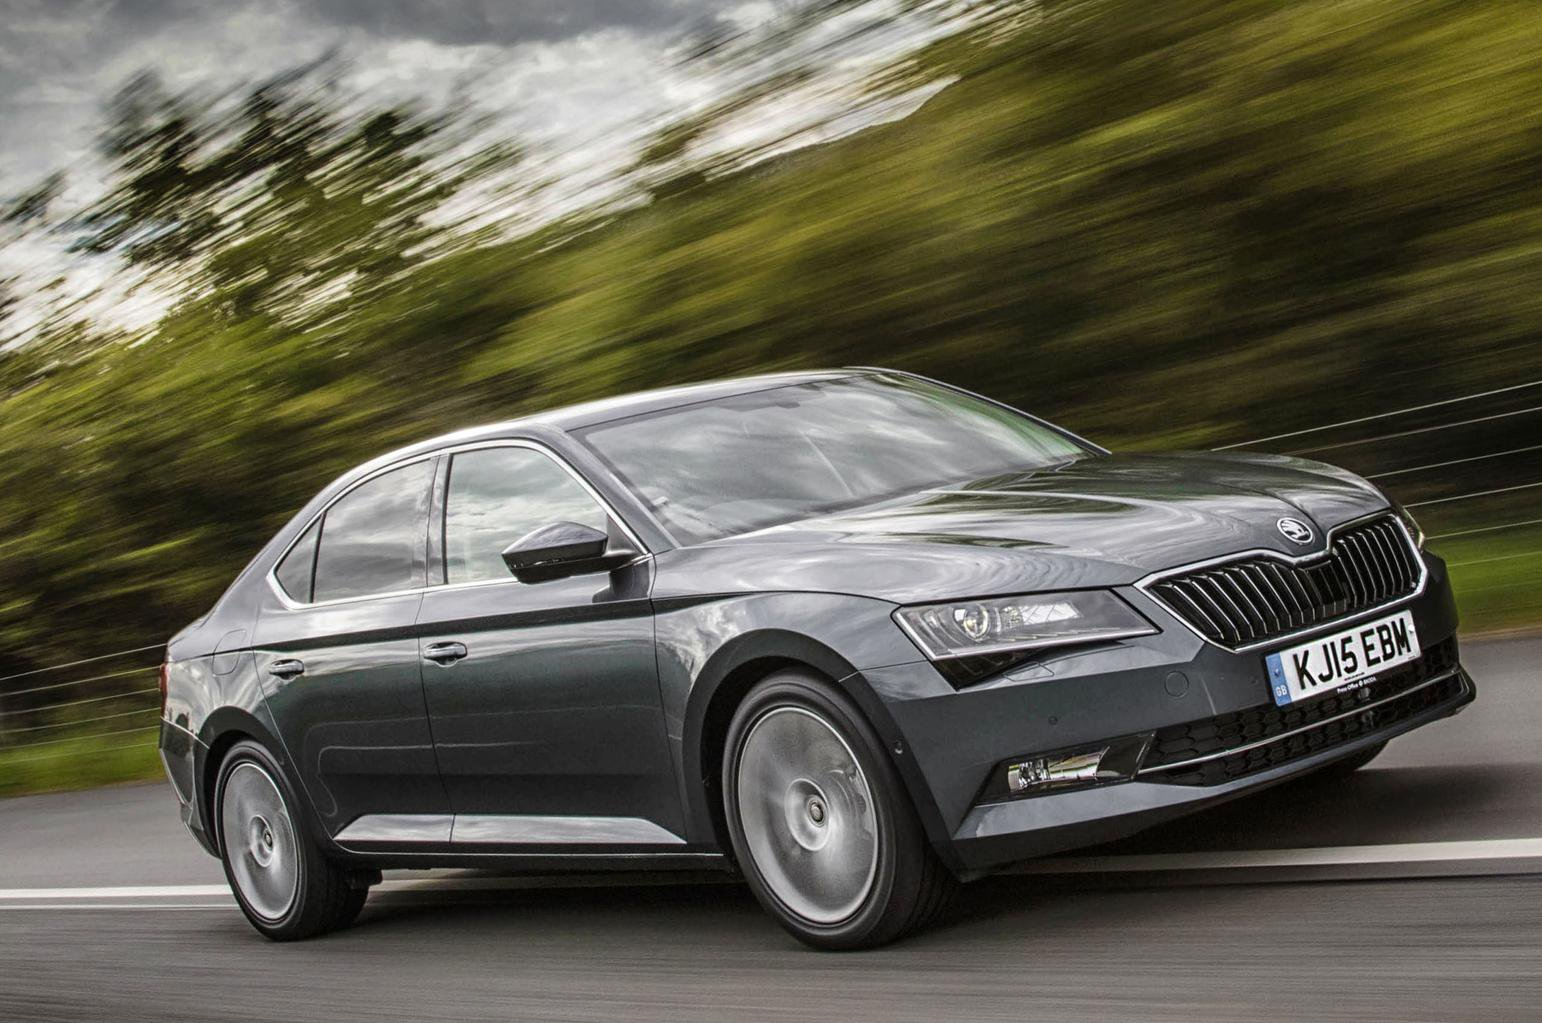 2015 Skoda Superb 2 0 TDI 190 DSG review | What Car?